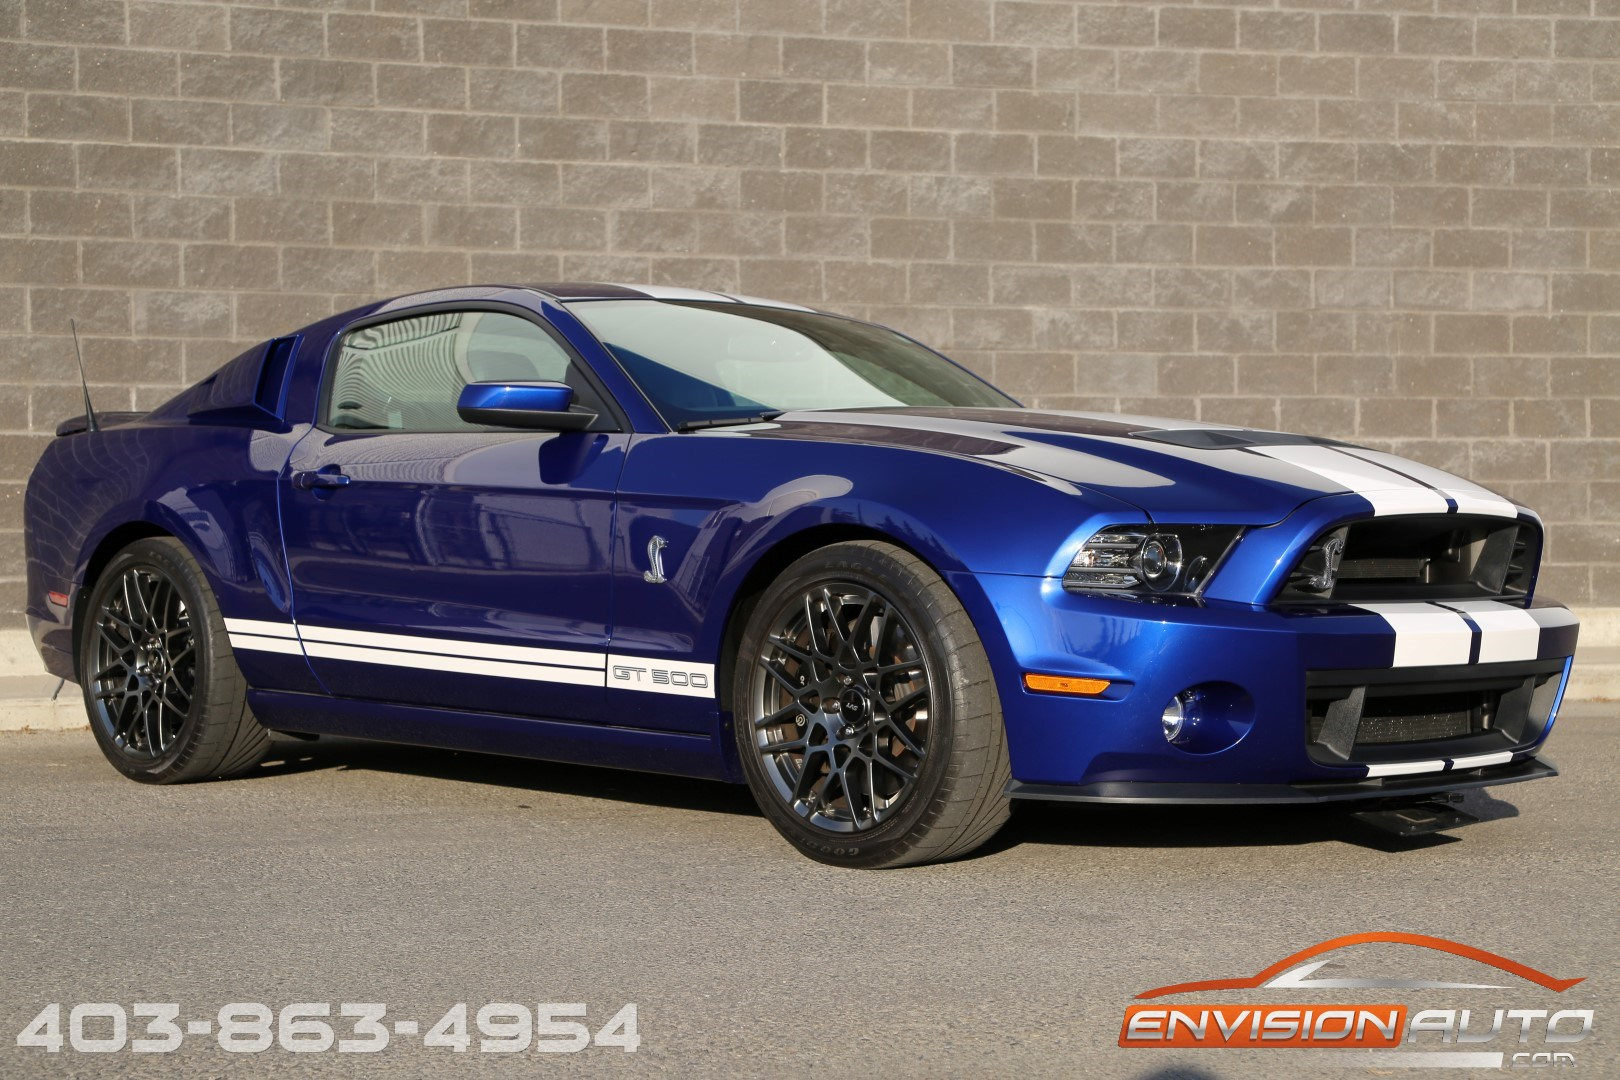 2014 ford mustang shelby gt500 1 owner only 19 000kms envision auto calgary highline luxury. Black Bedroom Furniture Sets. Home Design Ideas